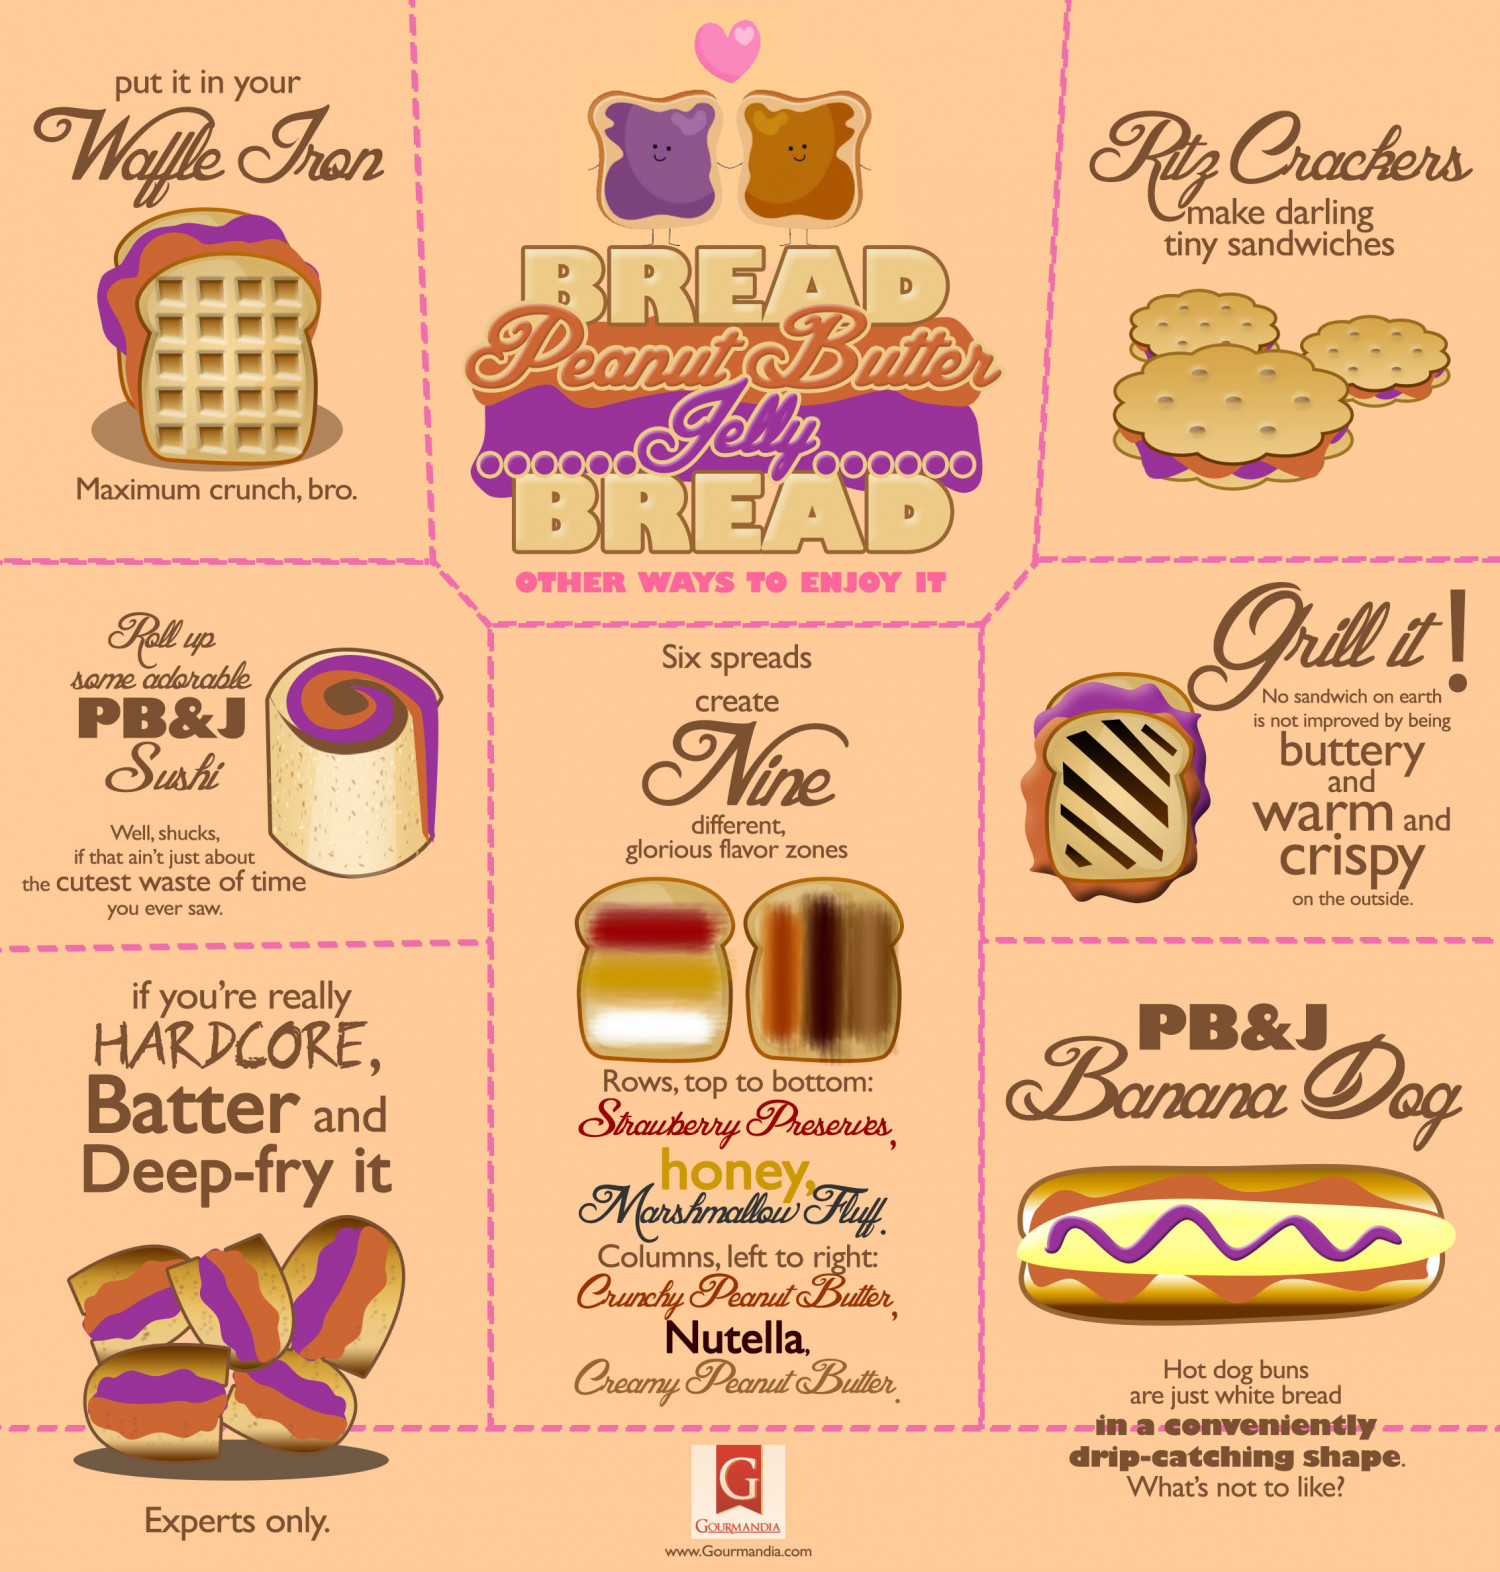 Peanut Butter and Jelly: Other Ways to Enjoy It Infographic